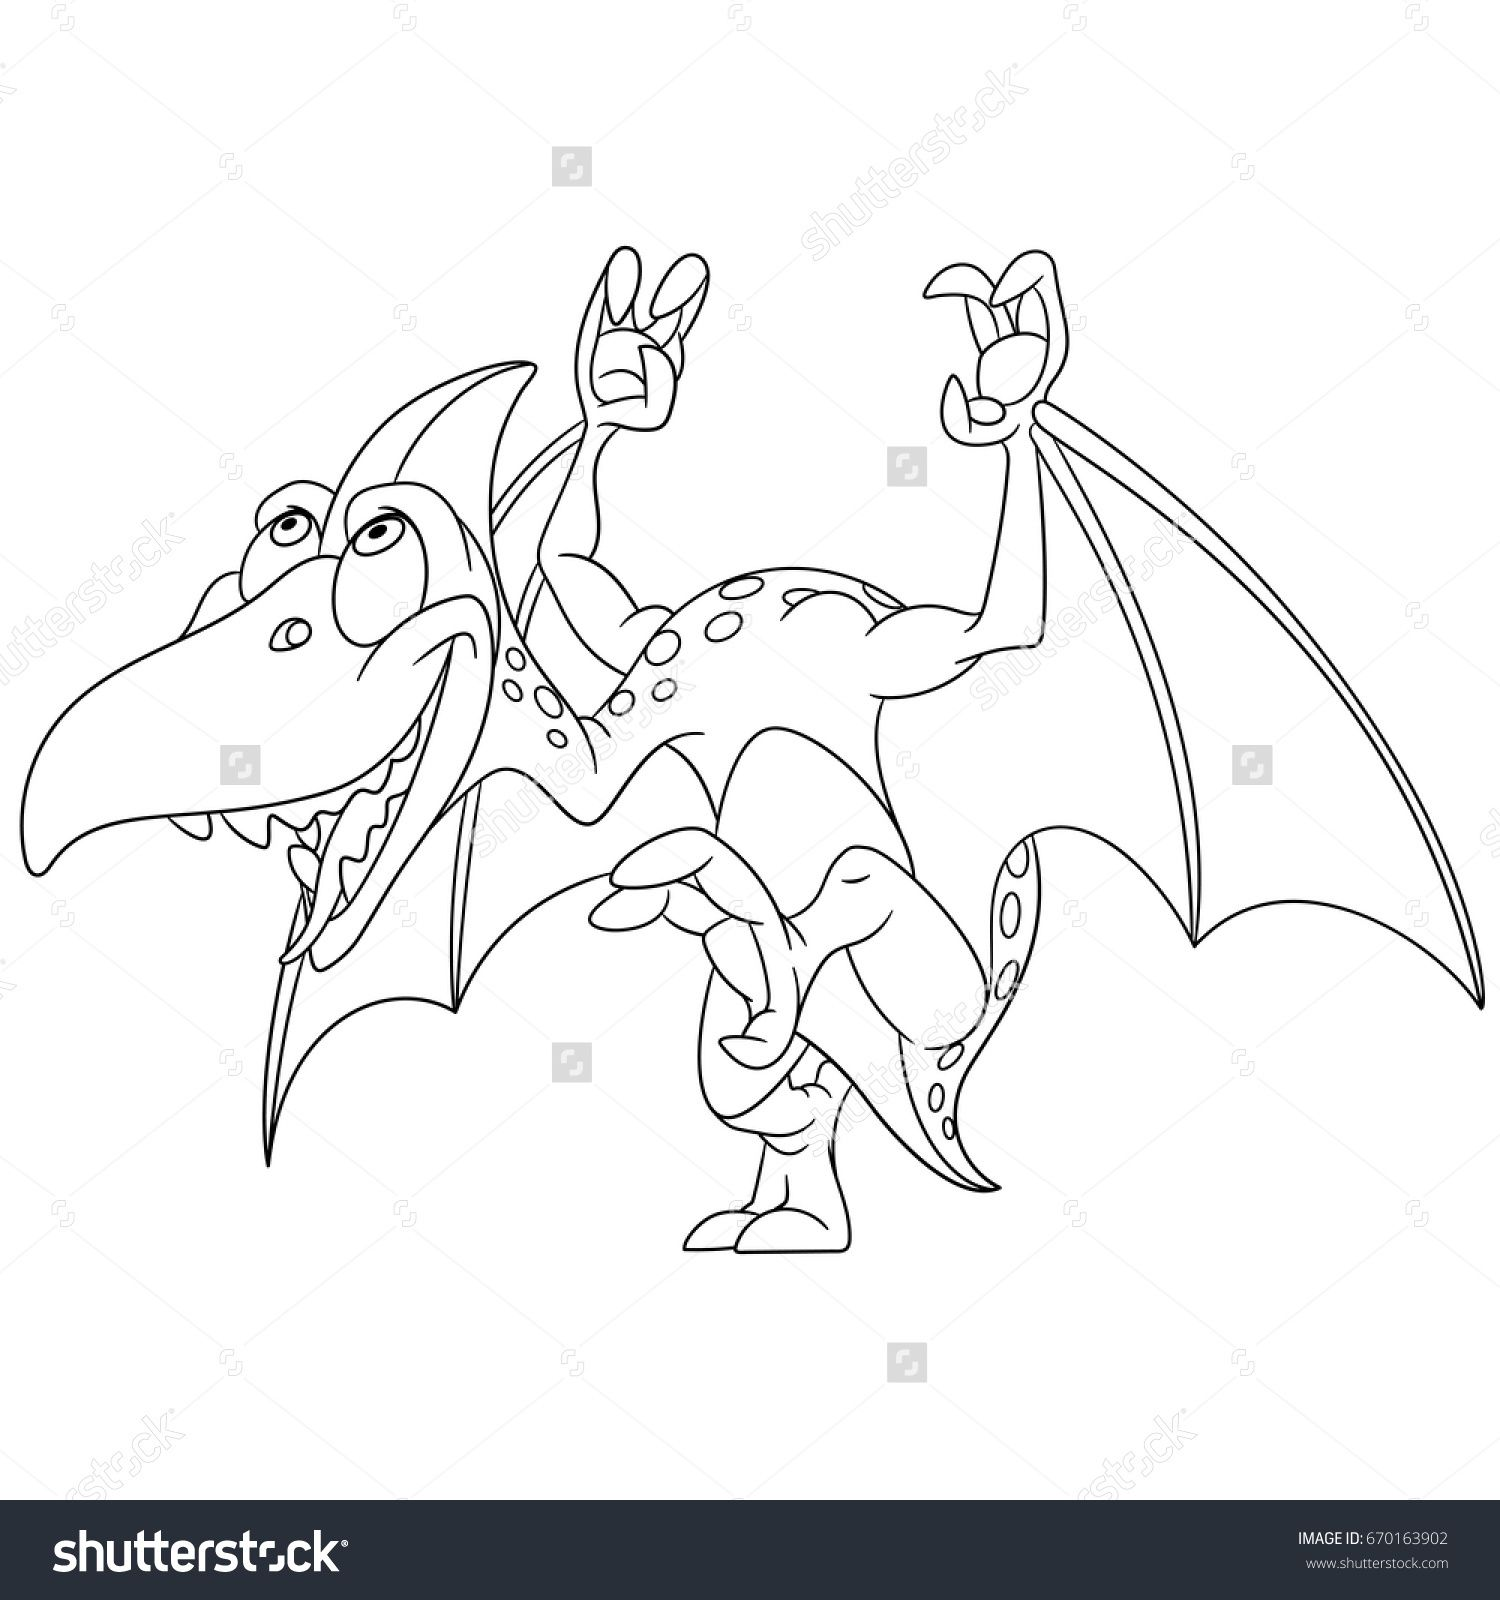 Coloring Page Cartoon Pterodactyl Dinosaur Vector Illustration